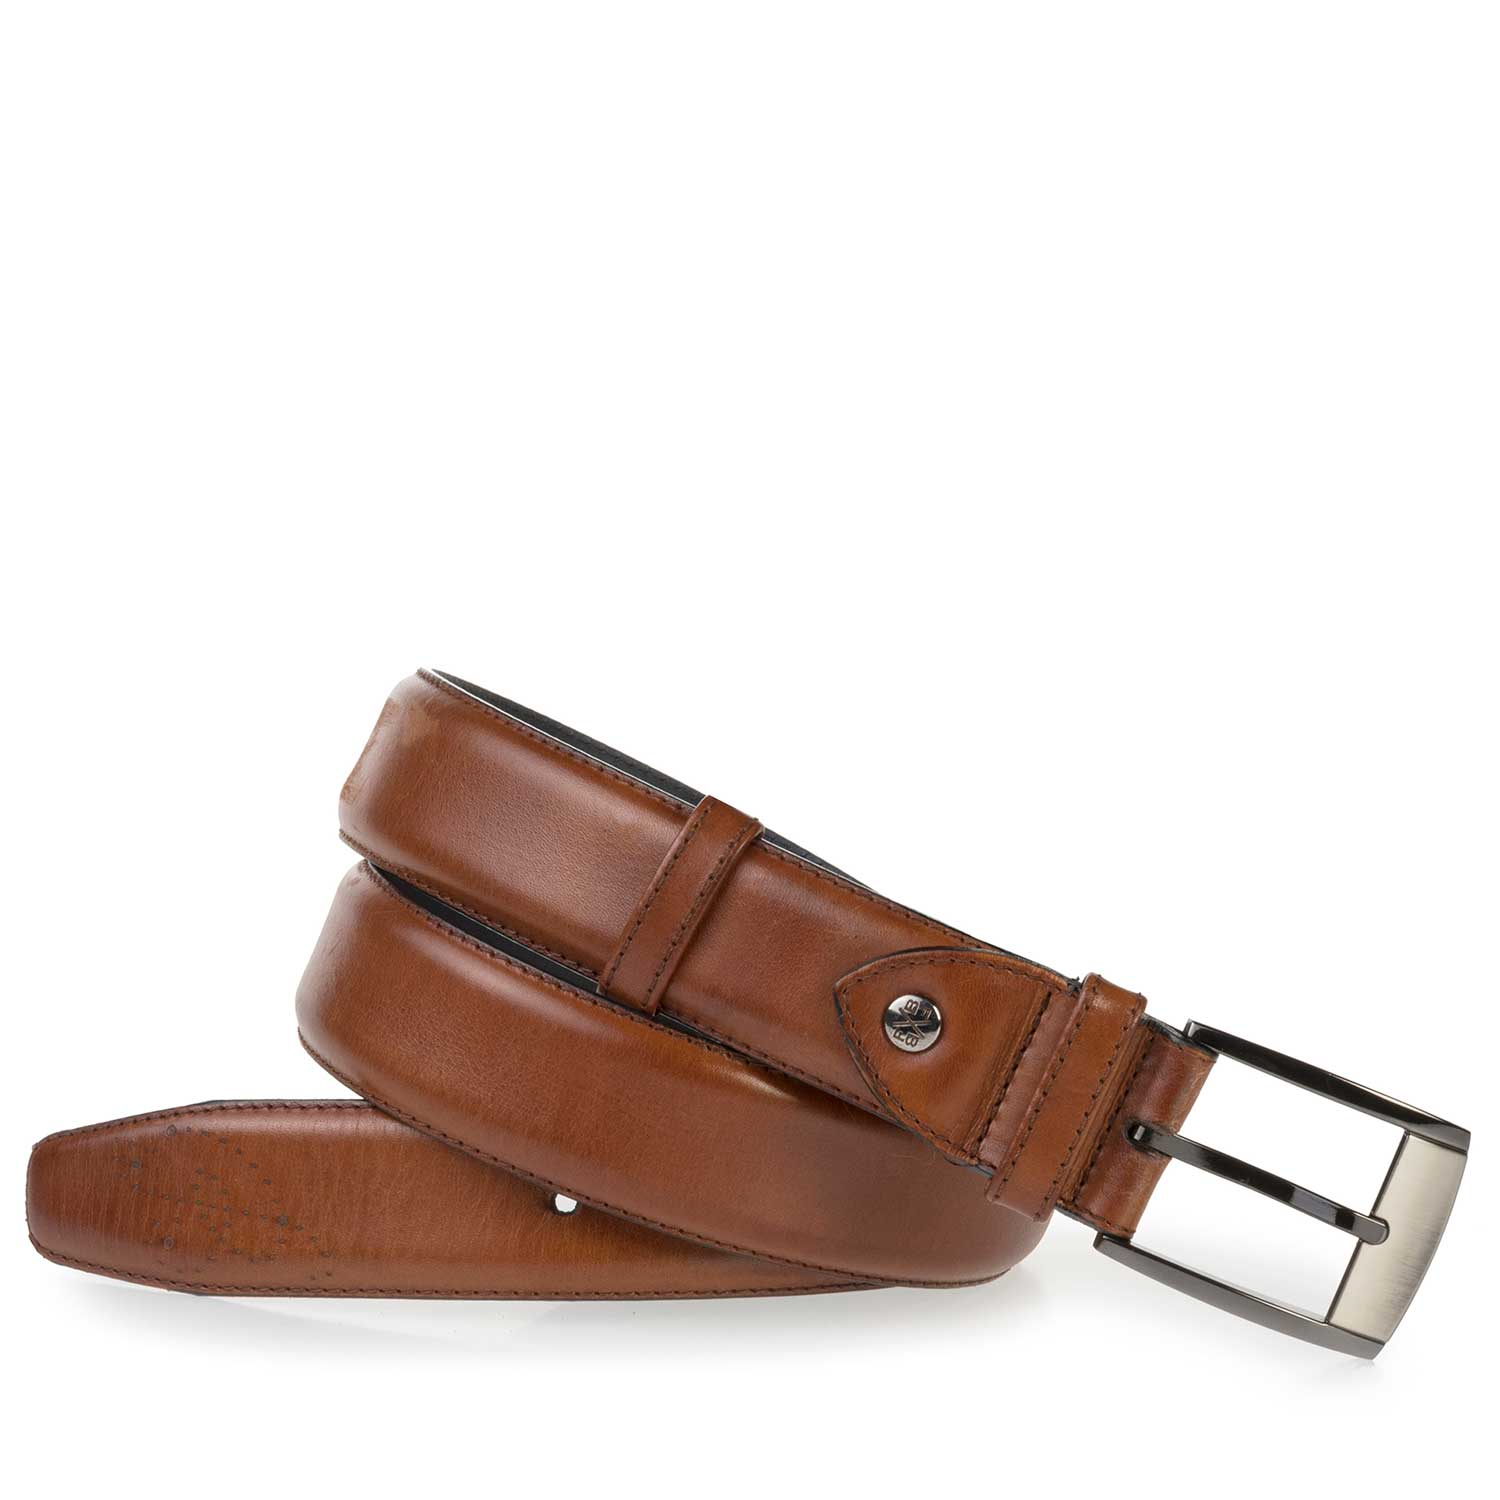 75177/03 - Cognac-coloured, perforated leather belt